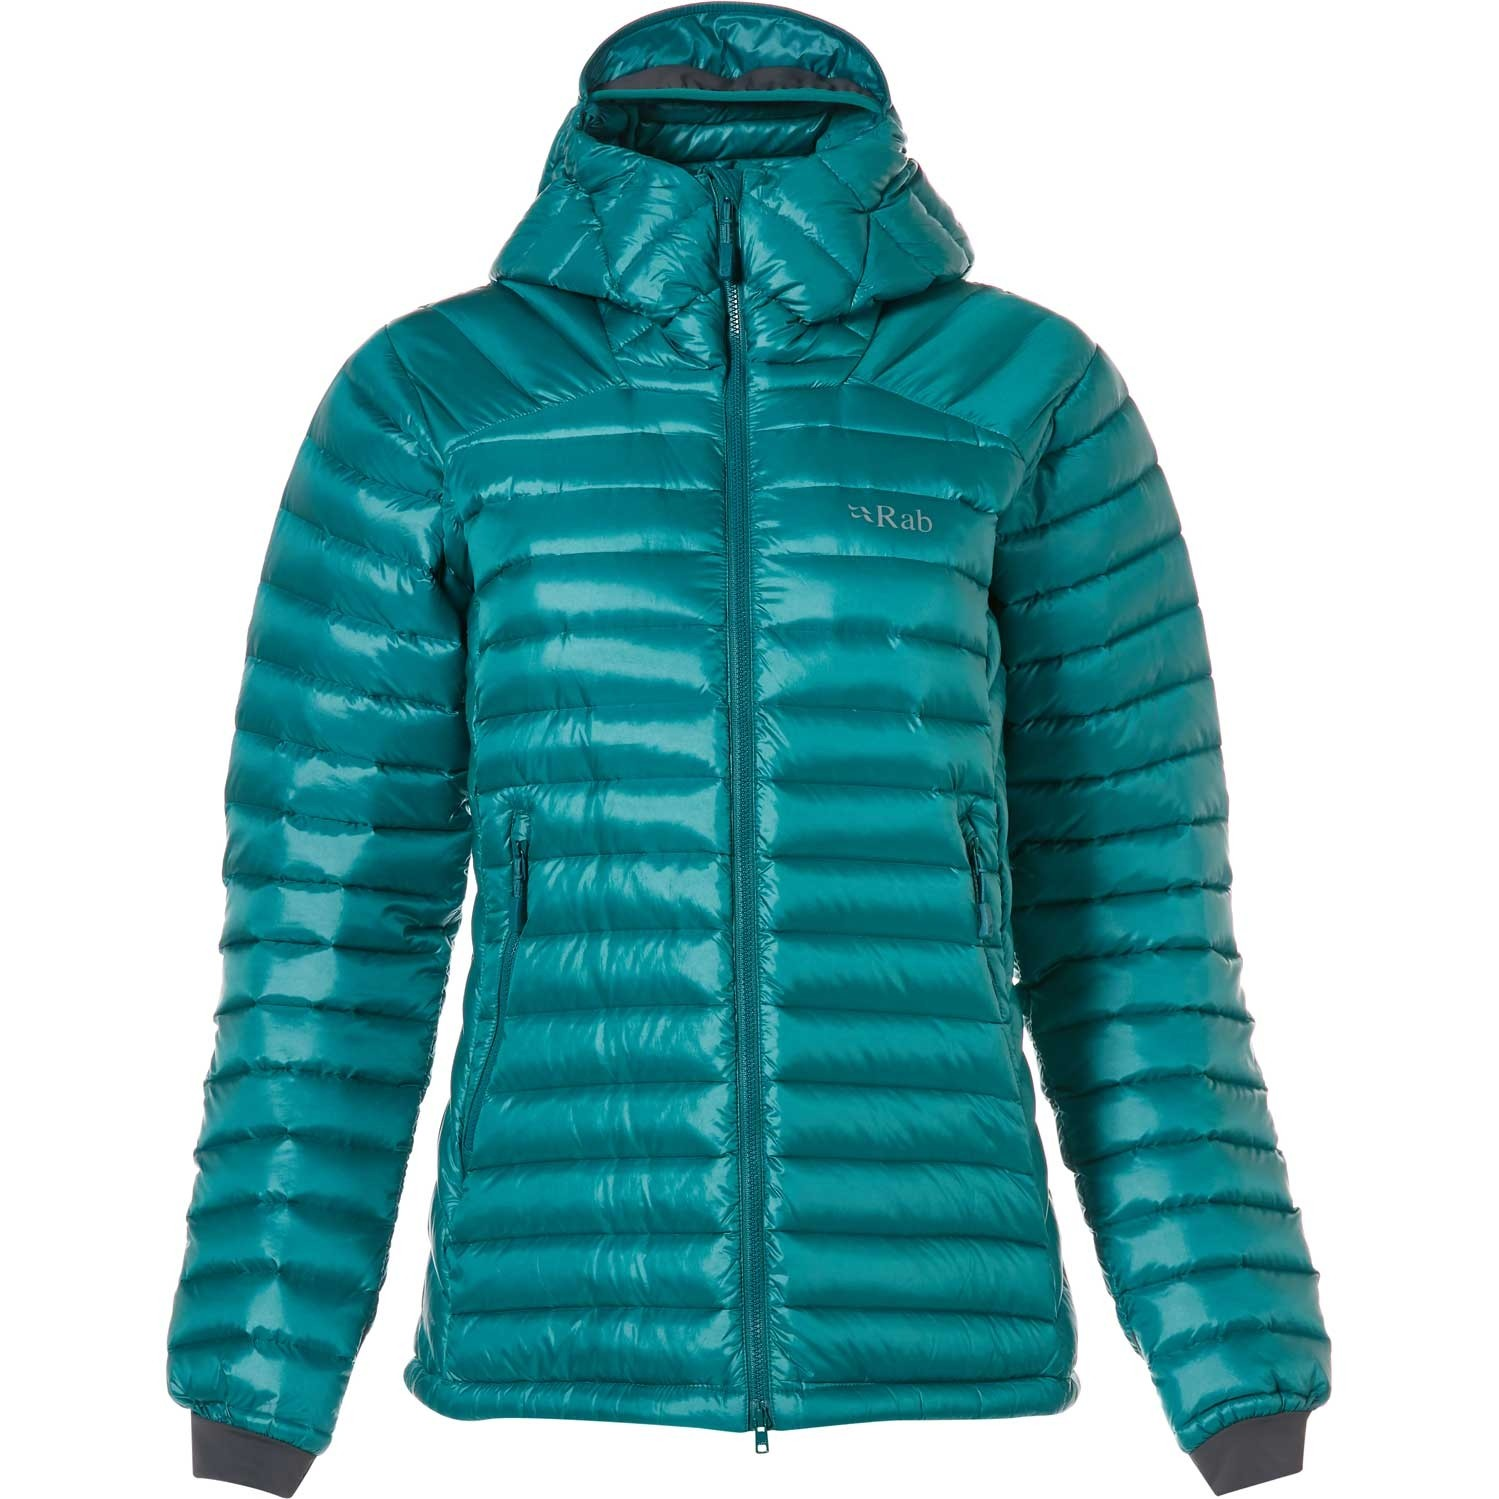 Rab Women's Microlight Summit Down Jacket - Atlantis